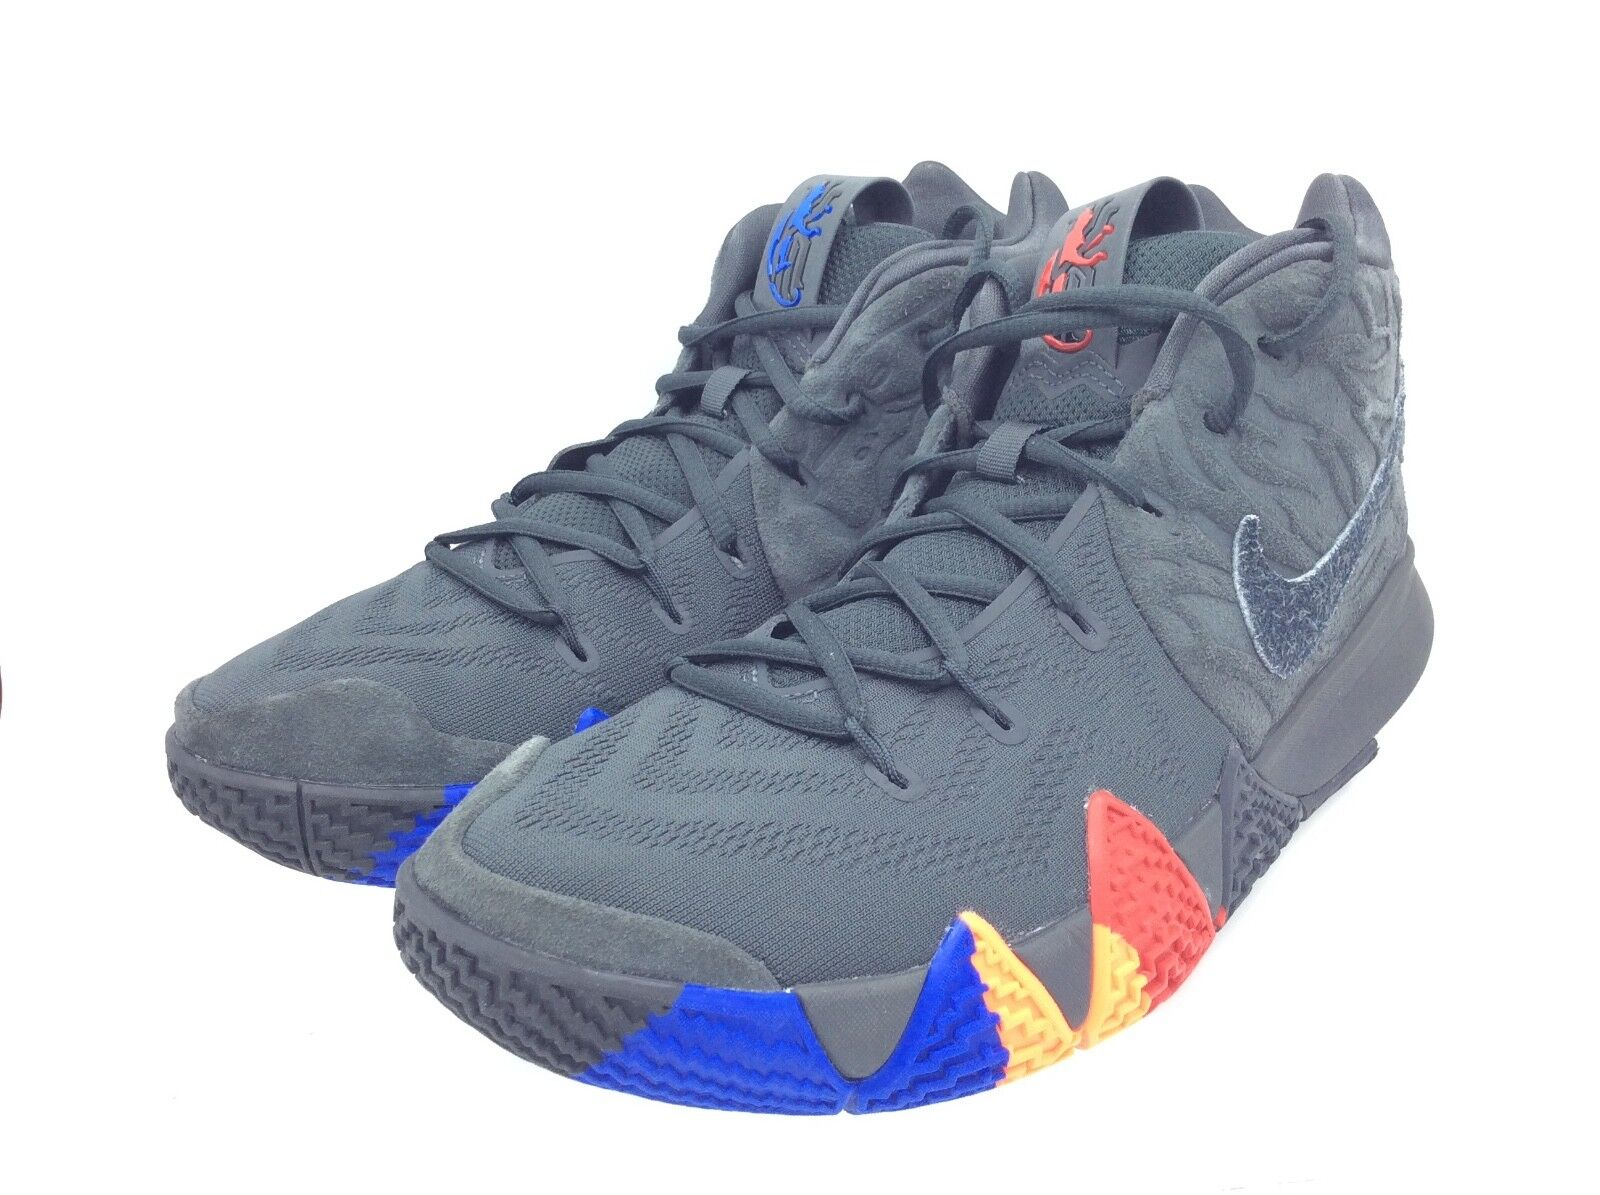 Nike, Men's Kyrie 4 Basketball shoes, Anthracite Black, Size 10.5